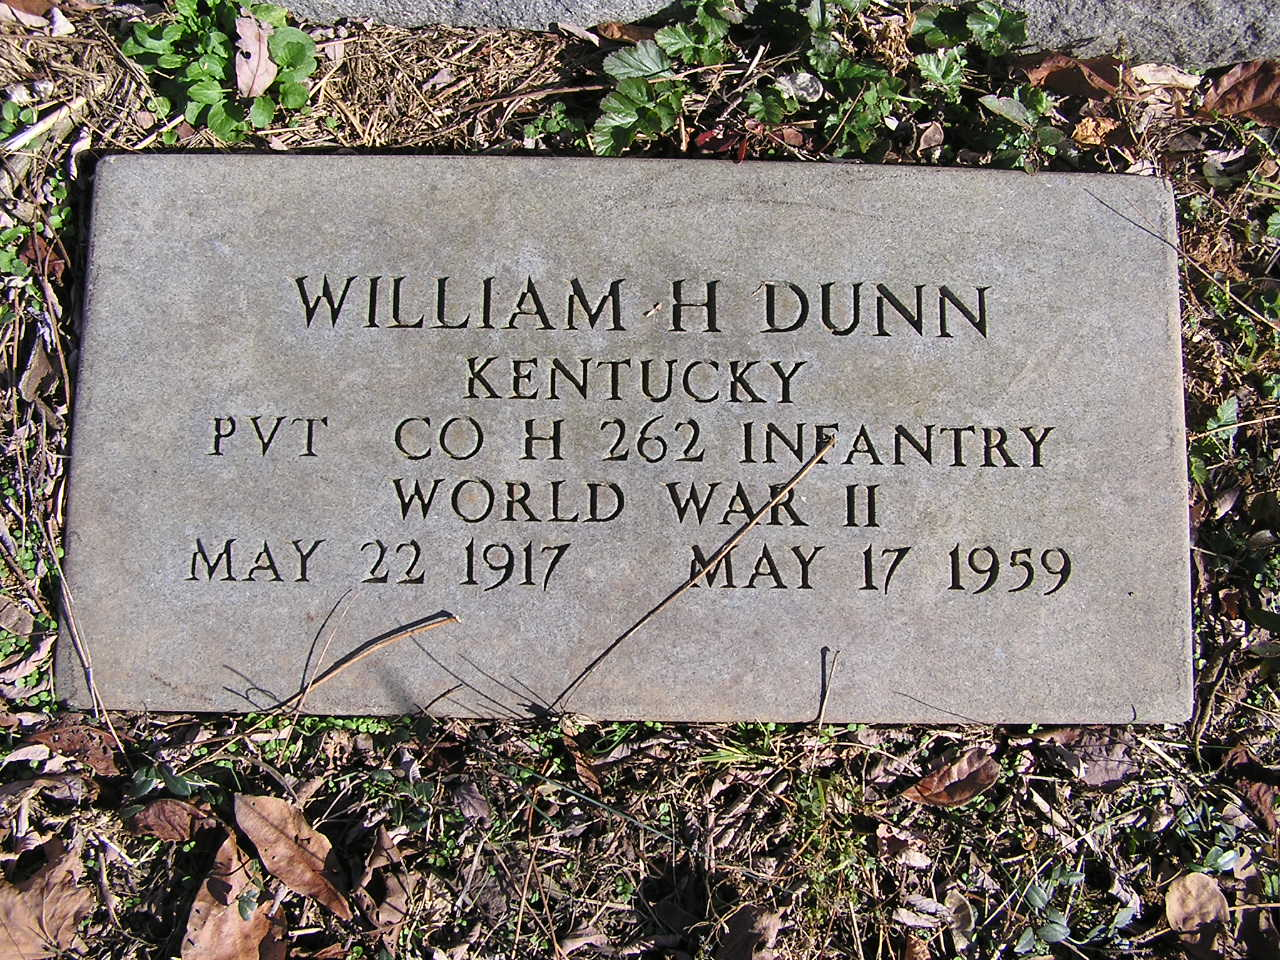 William Henry Dunn, Jr